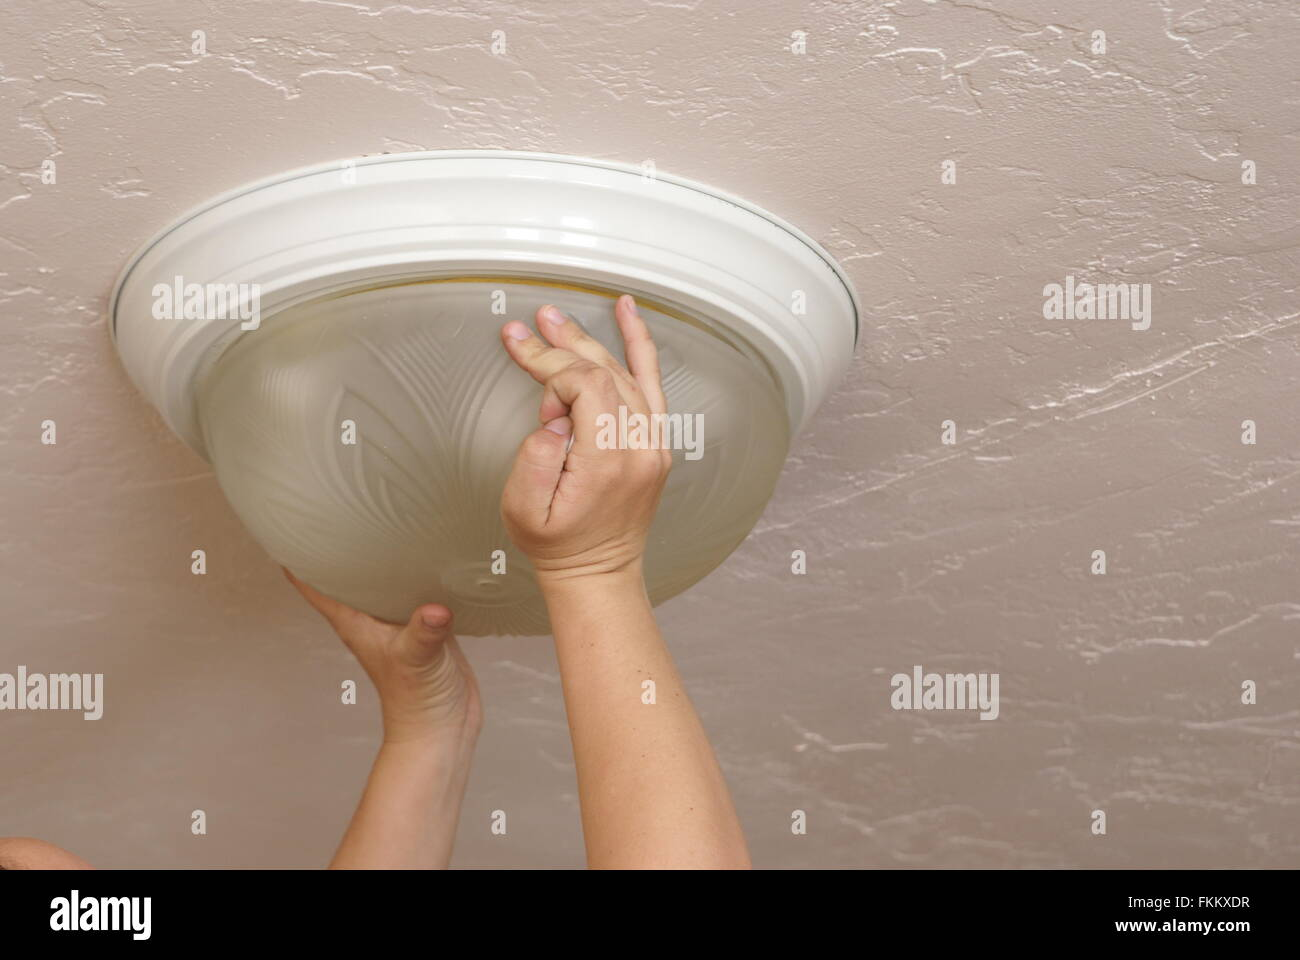 Replacing a household ceiling light globe. Home, house and everyday common activities. - Stock Image